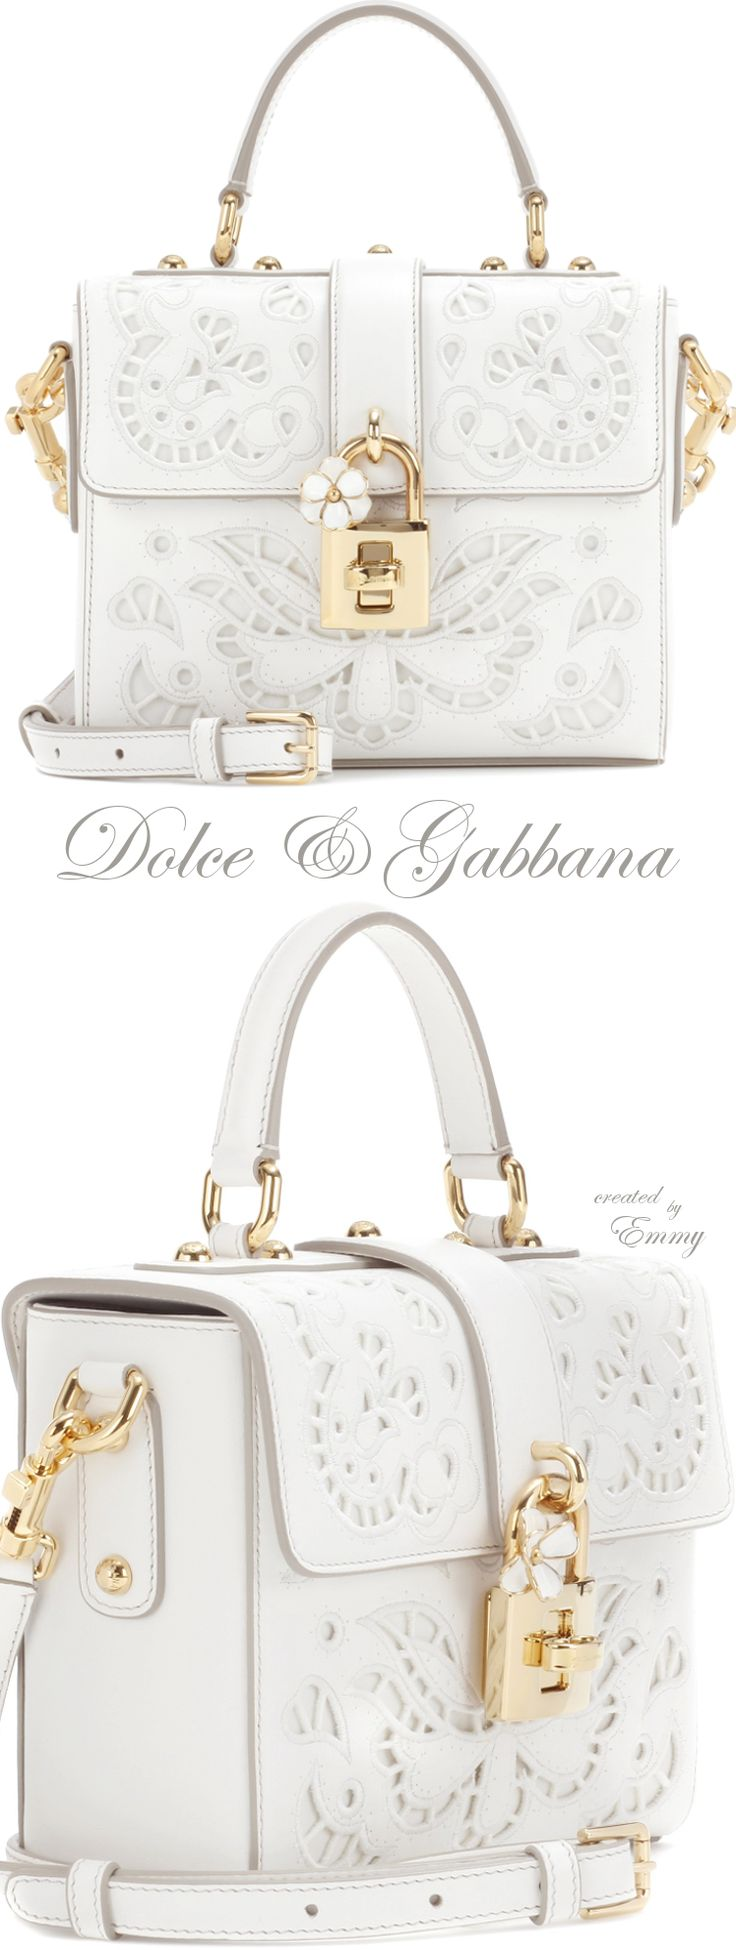 Emmy DE * Dolce & Gabbana Dolce Soft leather shoulder bag